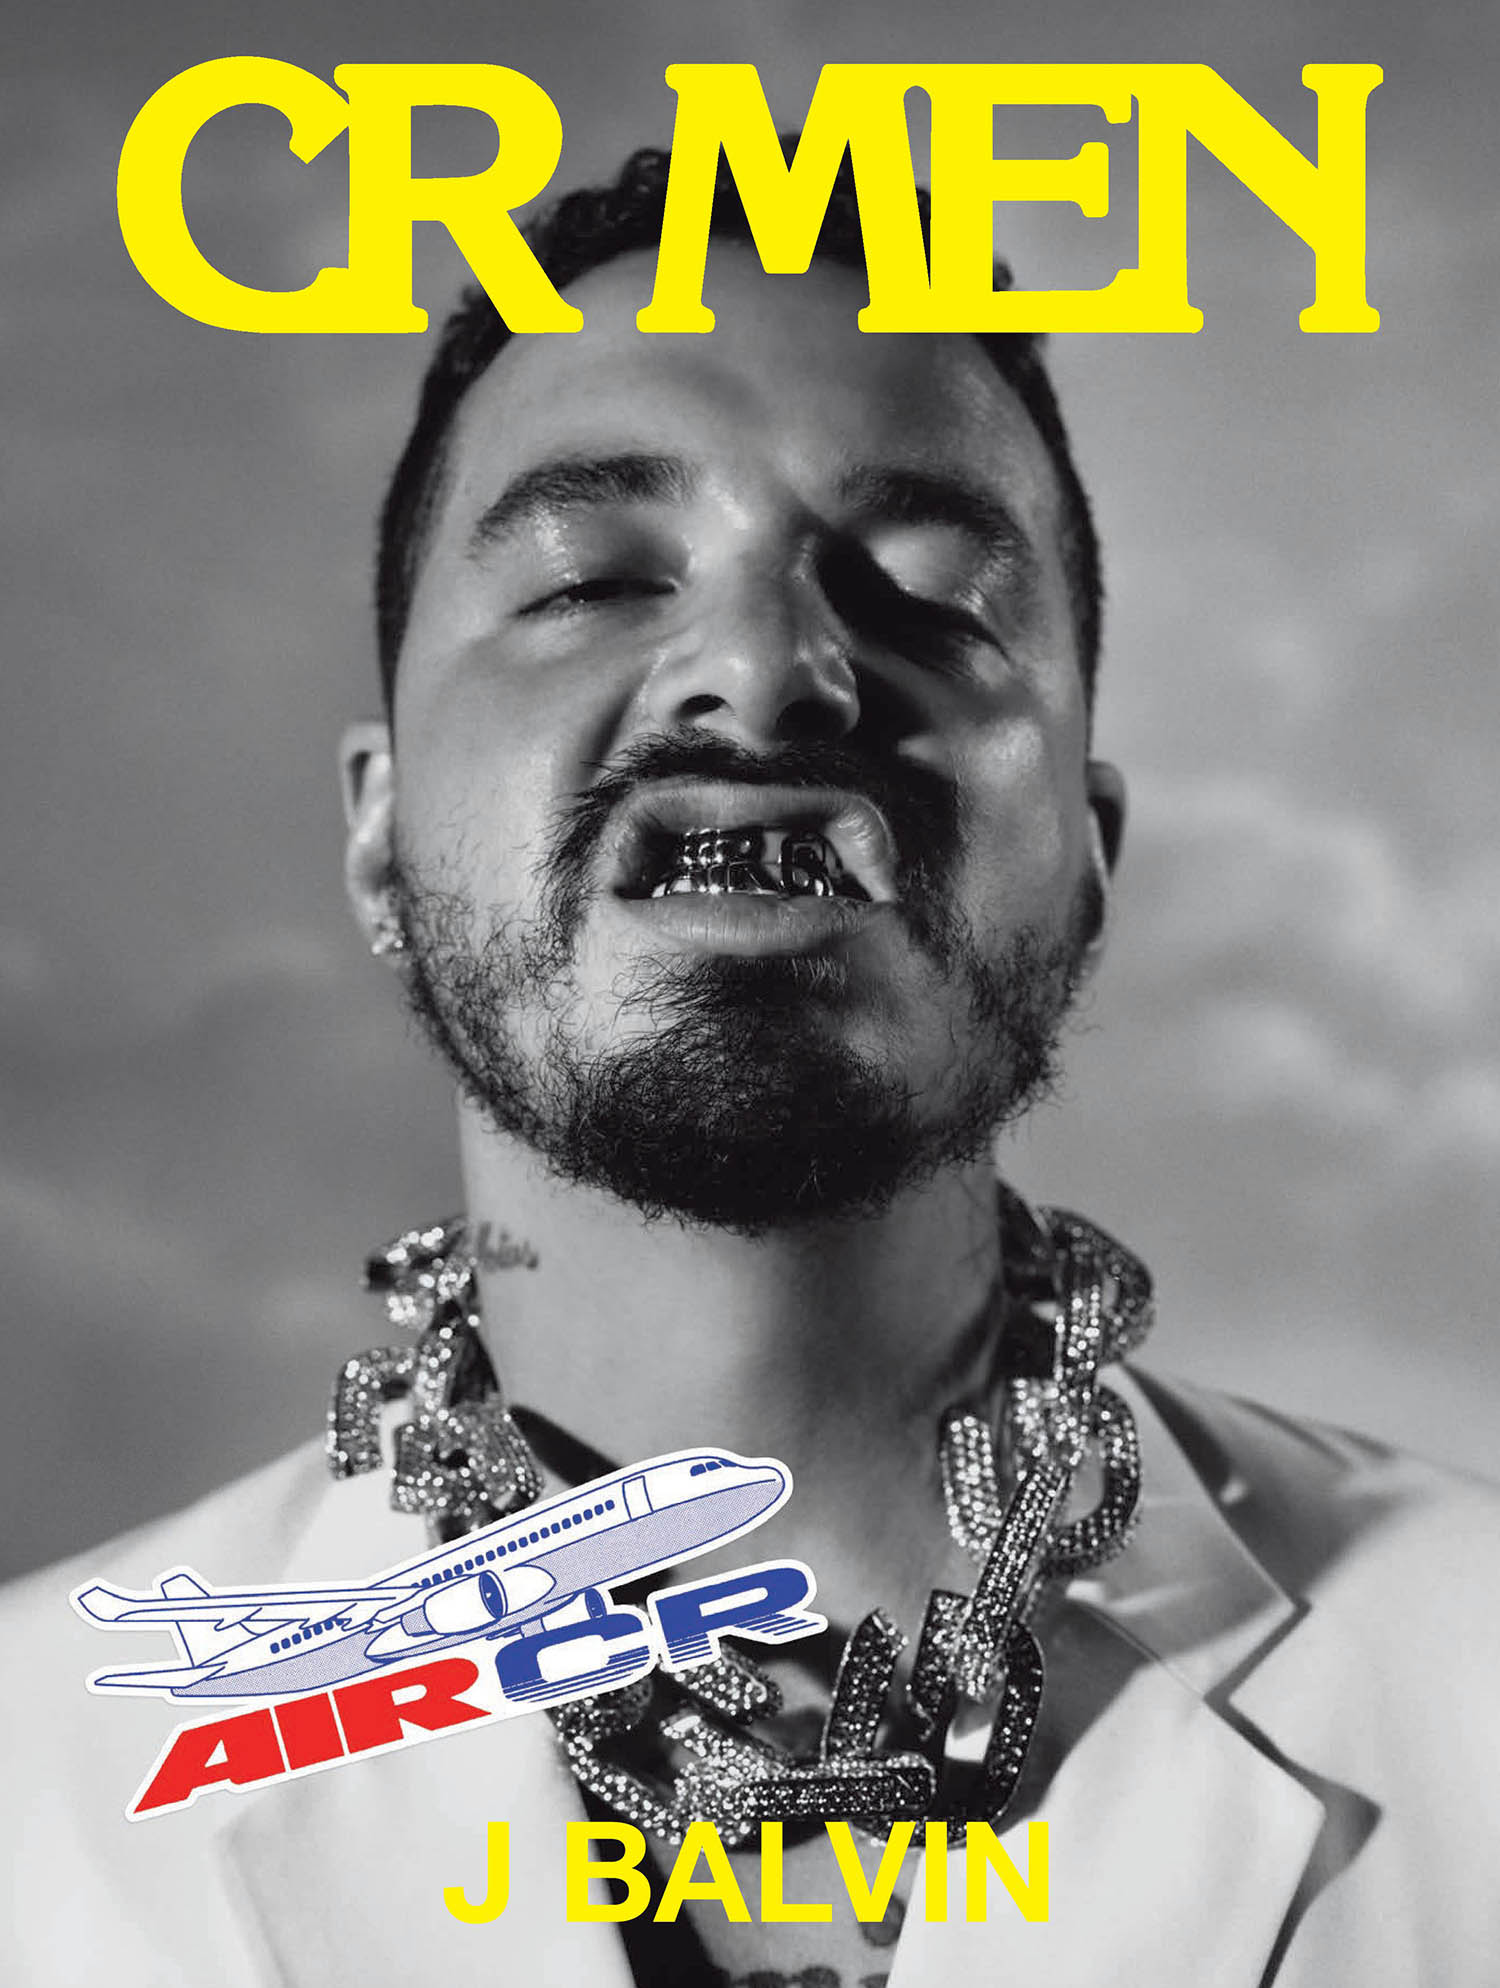 J Balvin covers CR MEN Issue 12 by Quil Lemons